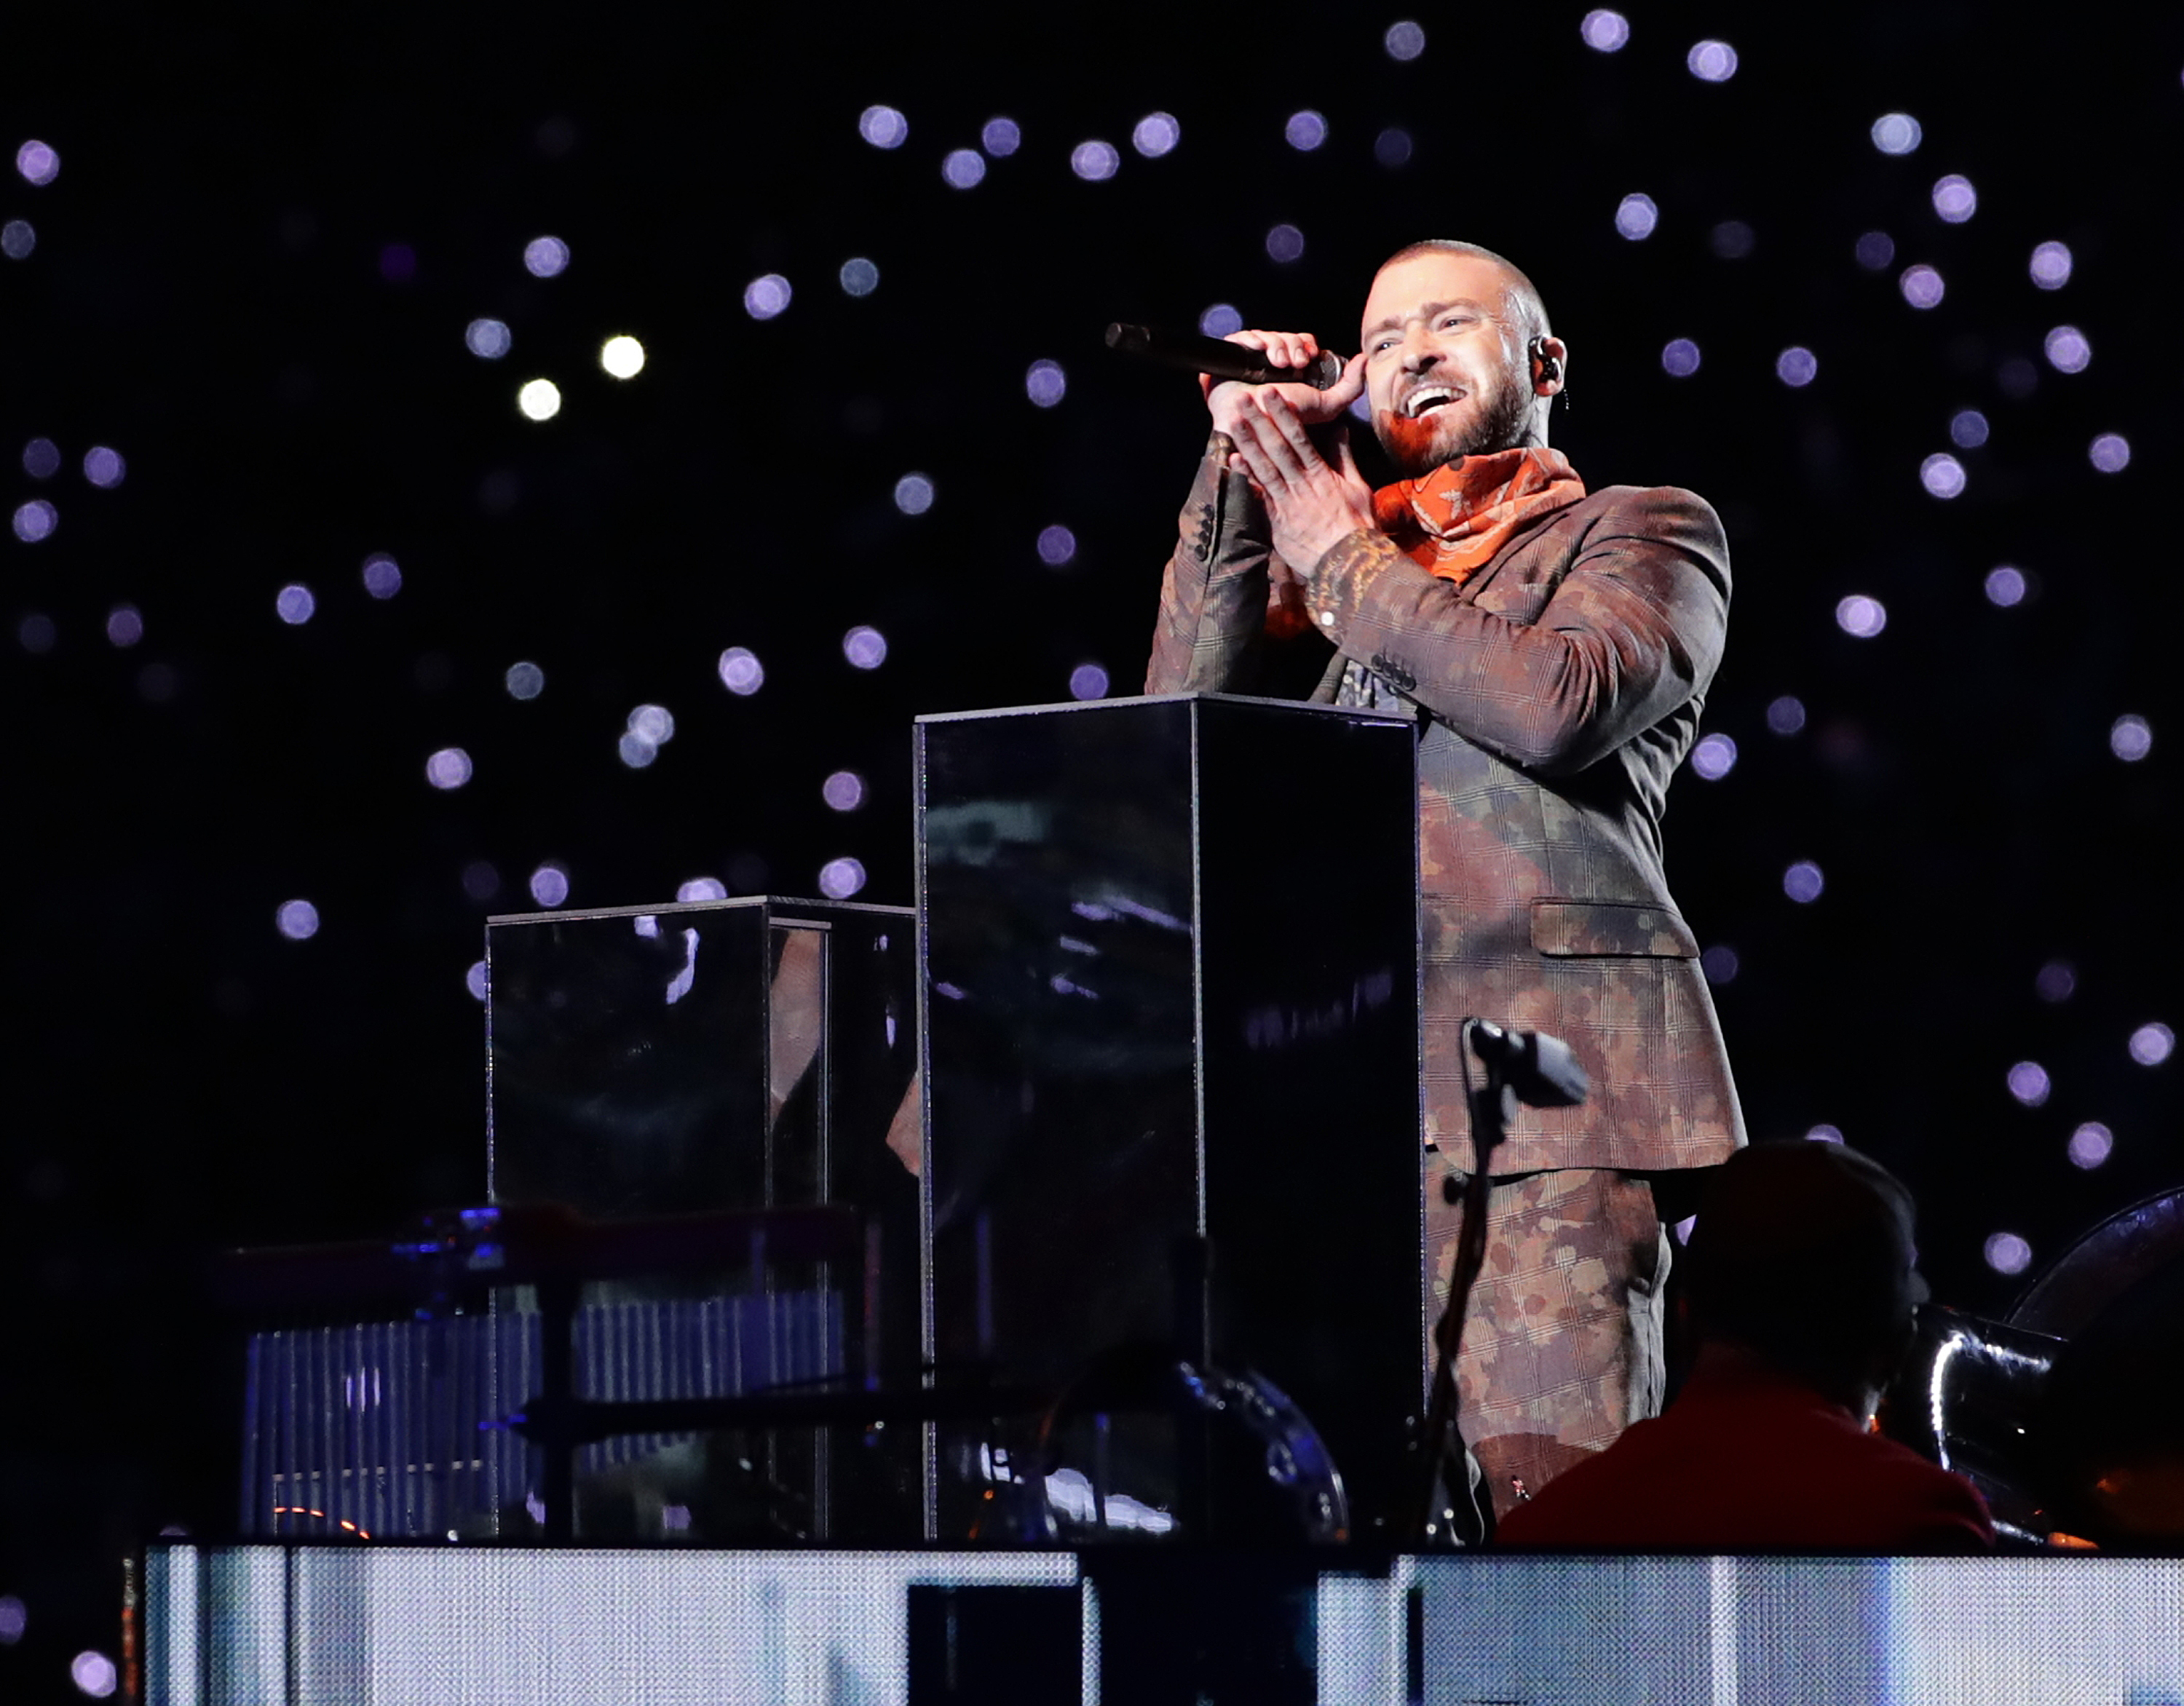 "<div class=""meta image-caption""><div class=""origin-logo origin-image ap""><span>AP</span></div><span class=""caption-text"">Justin Timberlake performs during halftime of the NFL Super Bowl 52 football game between the Philadelphia Eagles and the New England Patriots Sunday, Feb. 4, 2018. (AP Photo/Frank Franklin II)</span></div>"